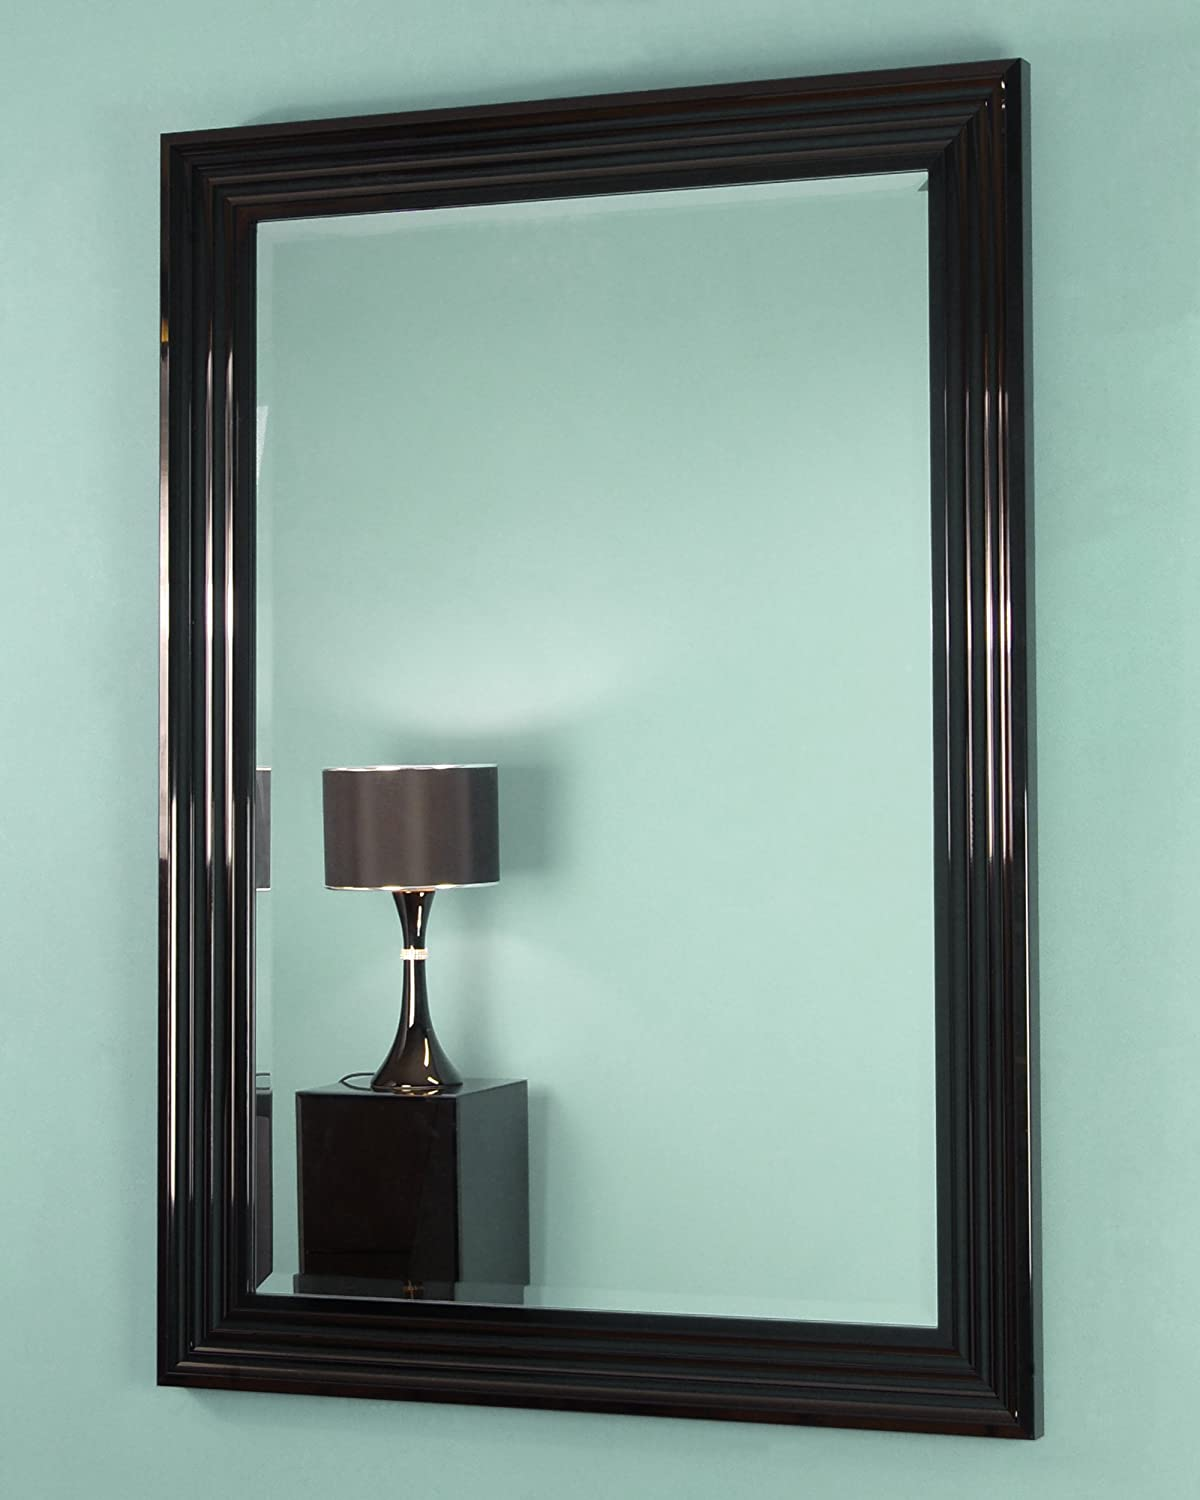 Amazon the chandelier mirror company cm derngate black high gloss laca framed bevelled mirror aloadofball Gallery